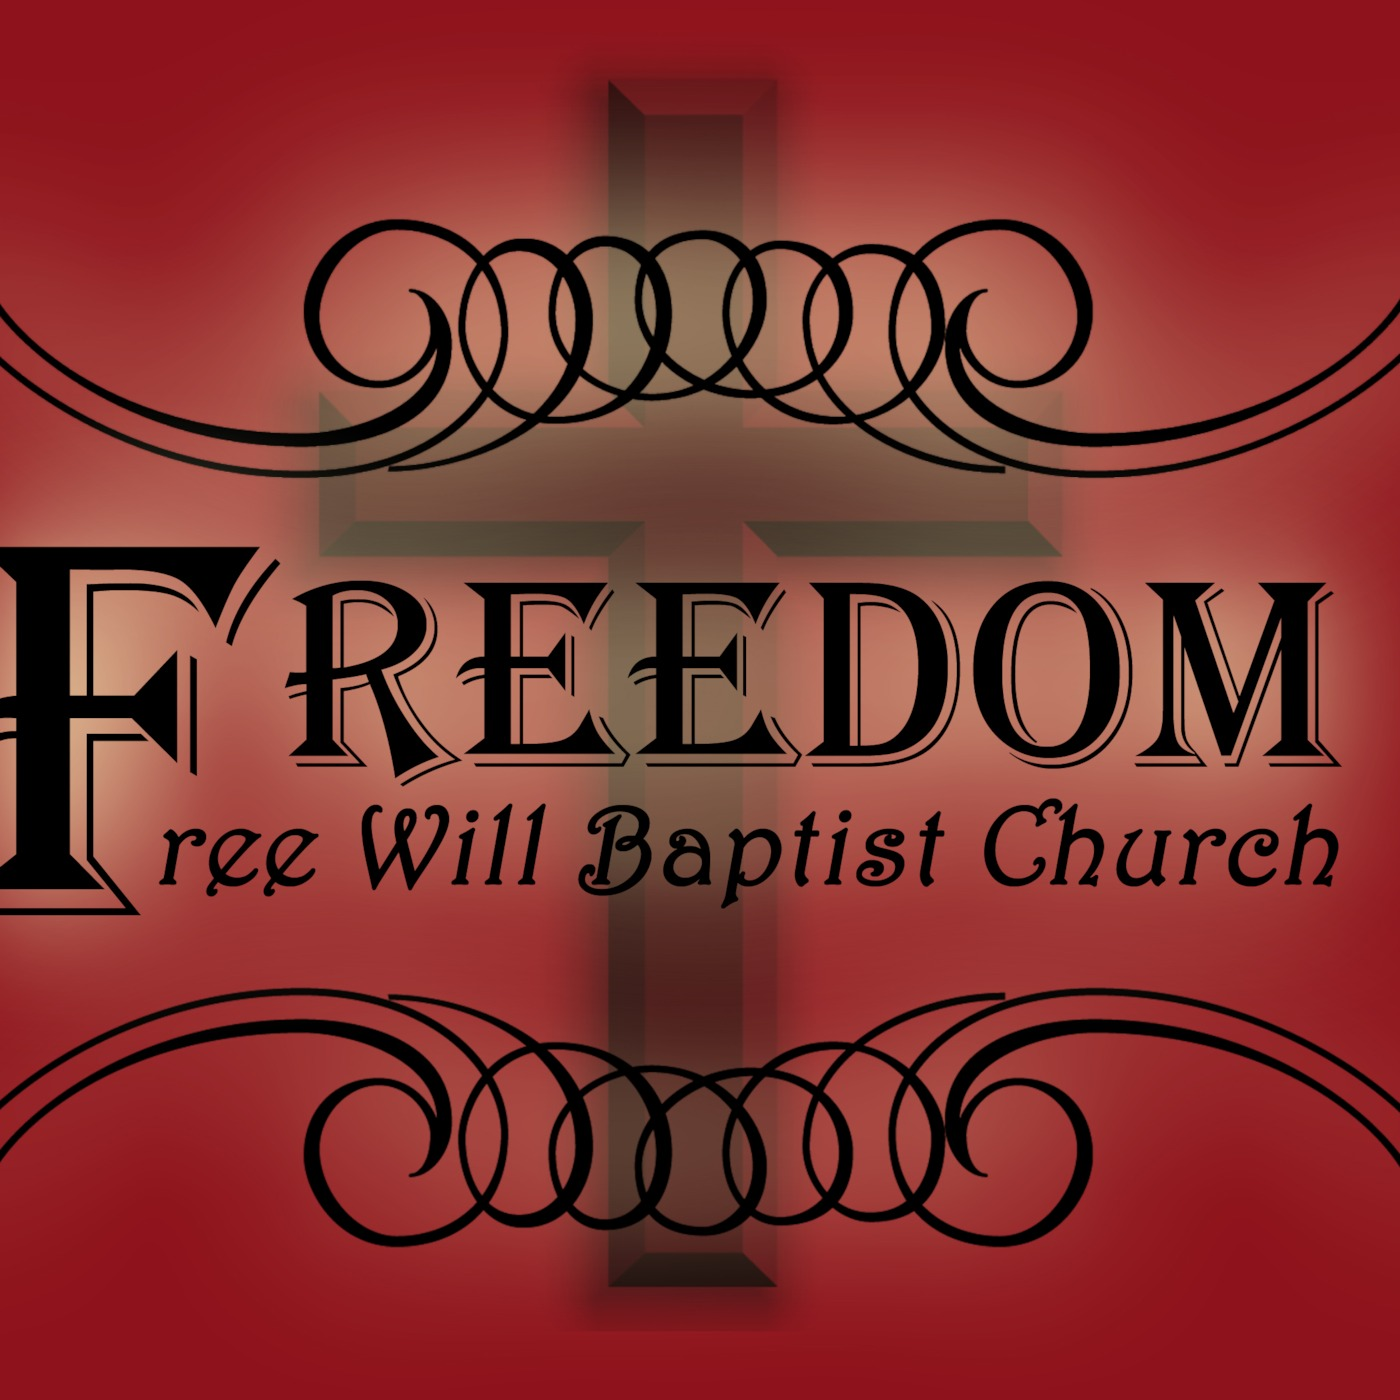 Freedom Free Will Baptist Church